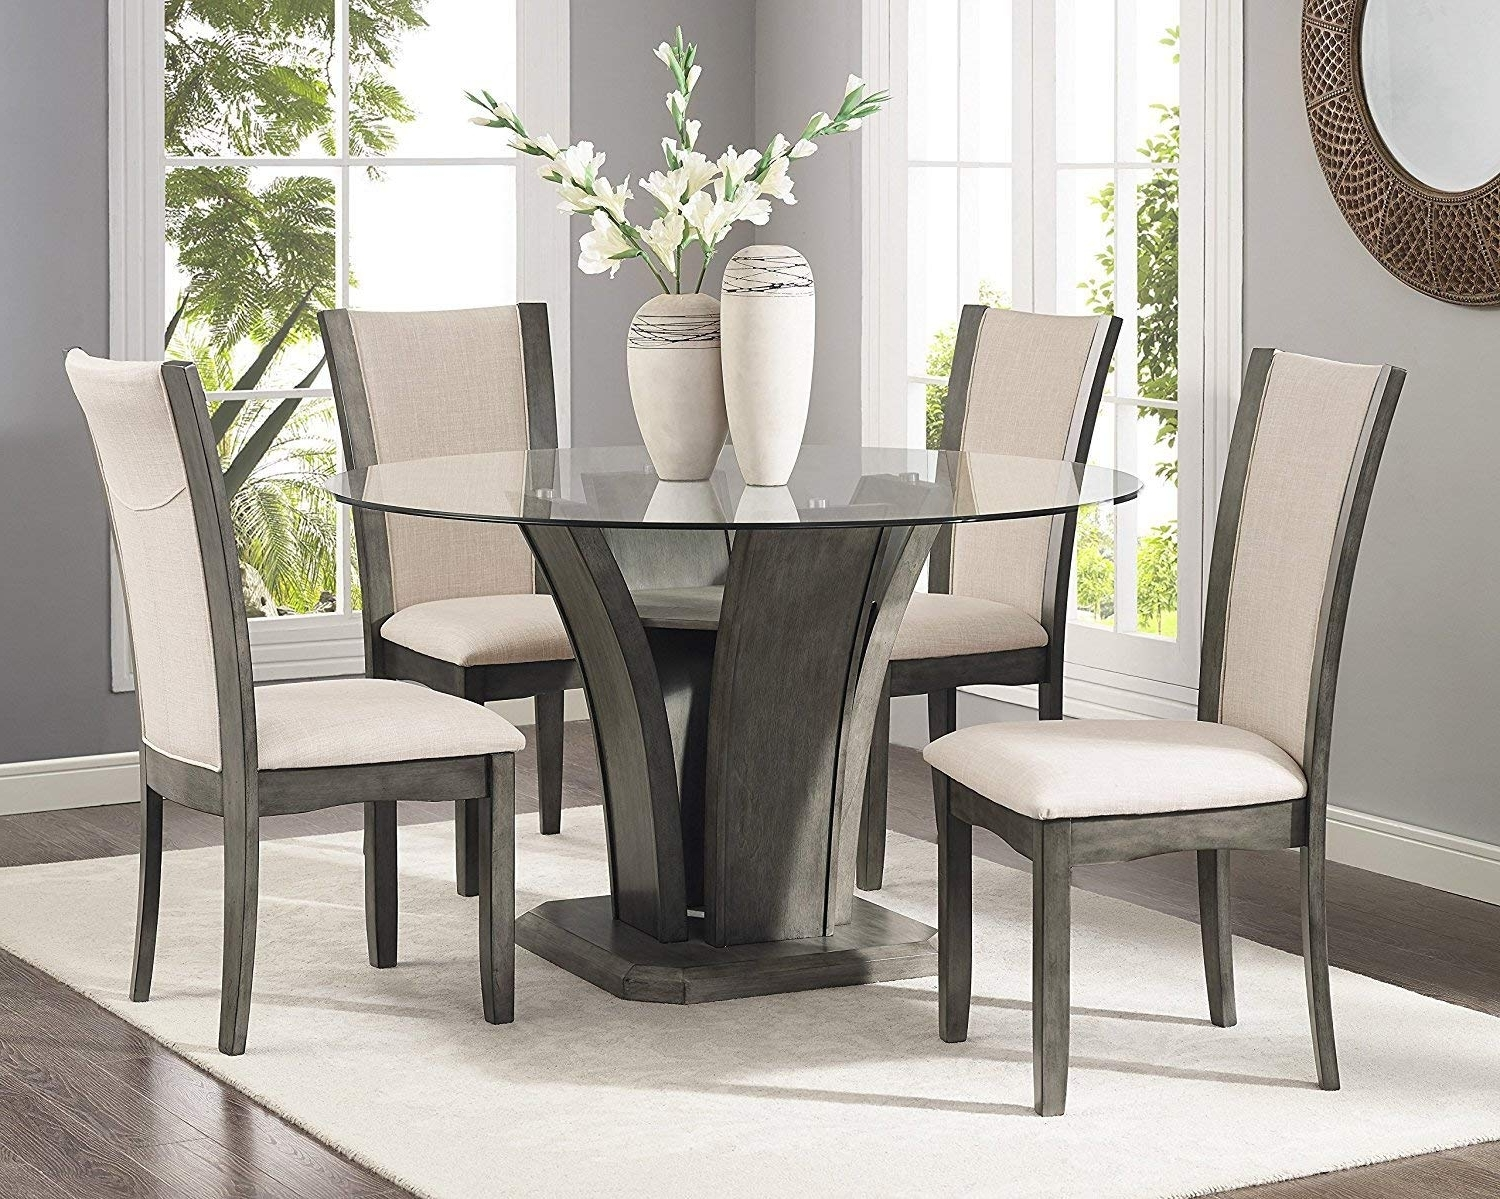 Amazon – Roundhill Furniture D051Gy Kecco Grey 5 Piece Glass Top Throughout Widely Used Laurent 5 Piece Round Dining Sets With Wood Chairs (View 2 of 25)